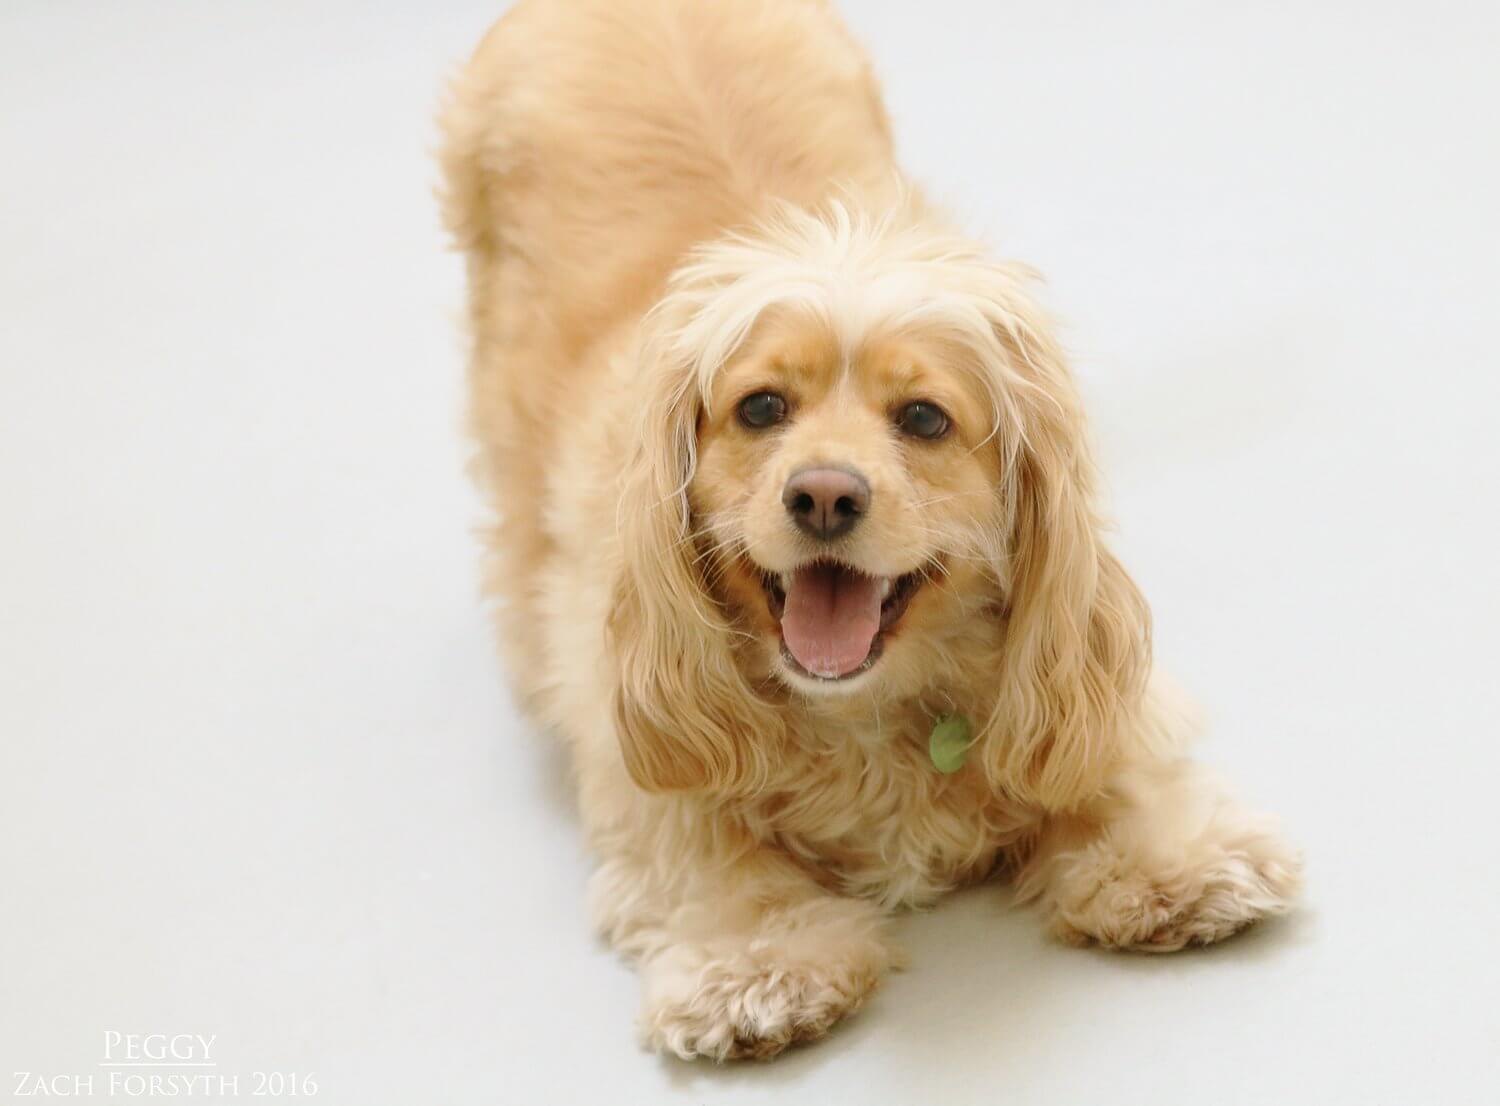 Peggy-cocker-spaniel-1